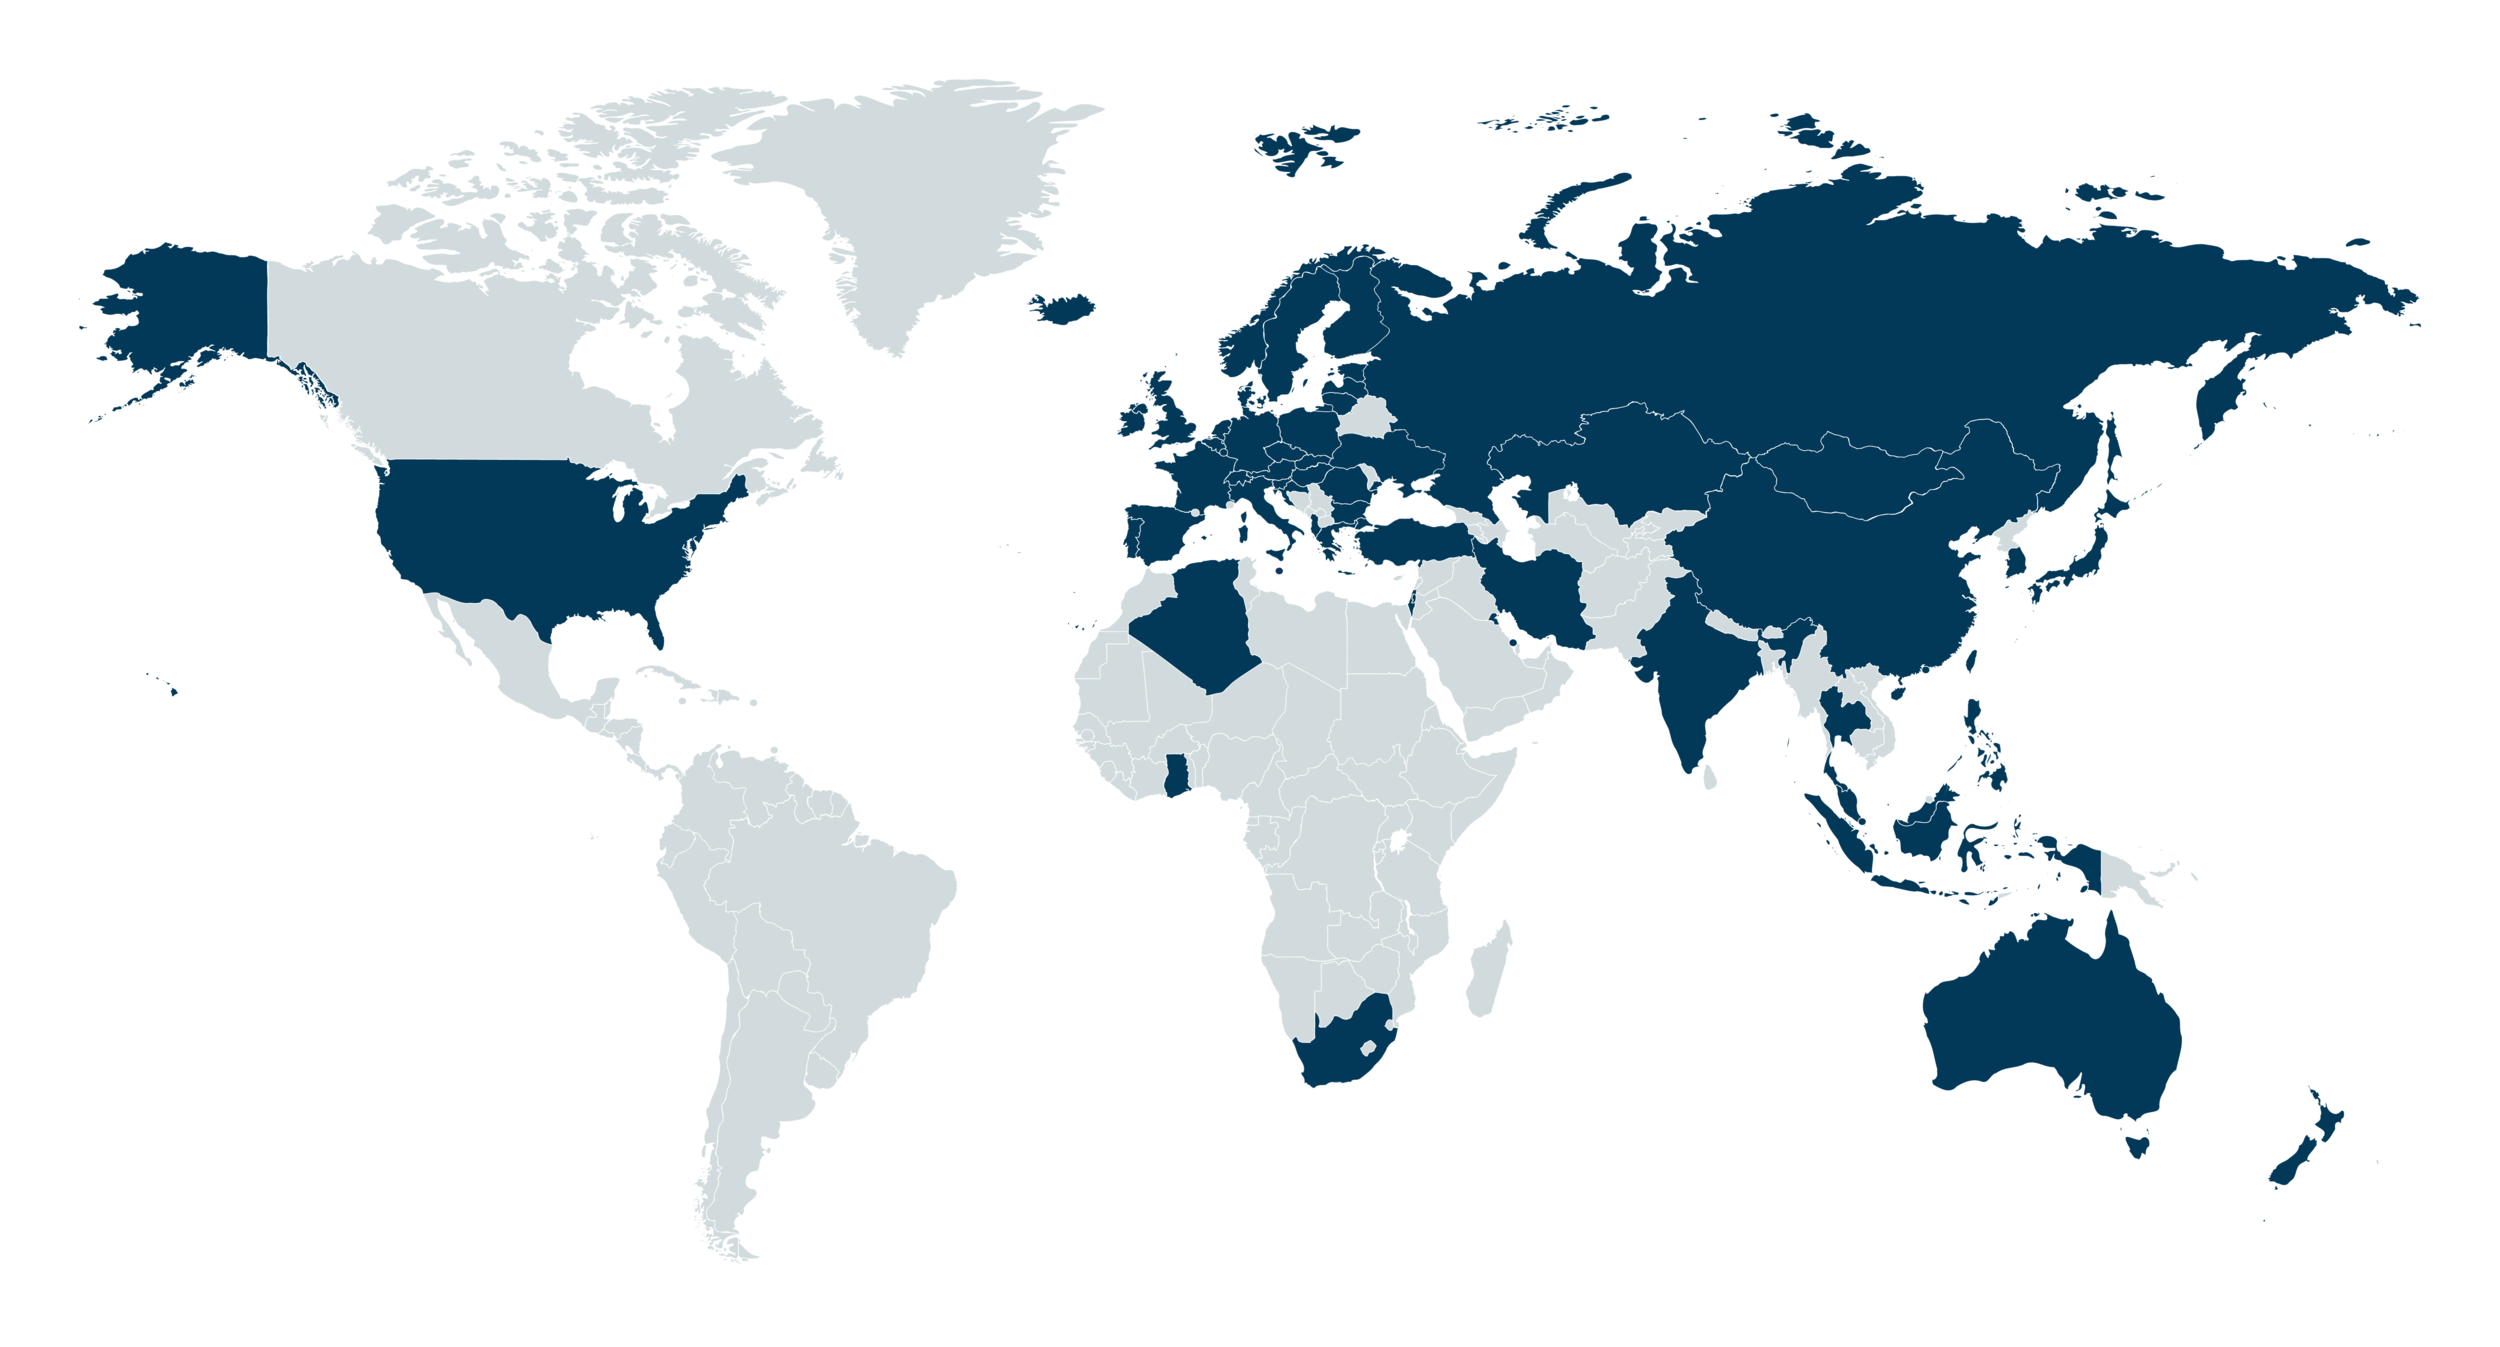 coverage_map_countries.png